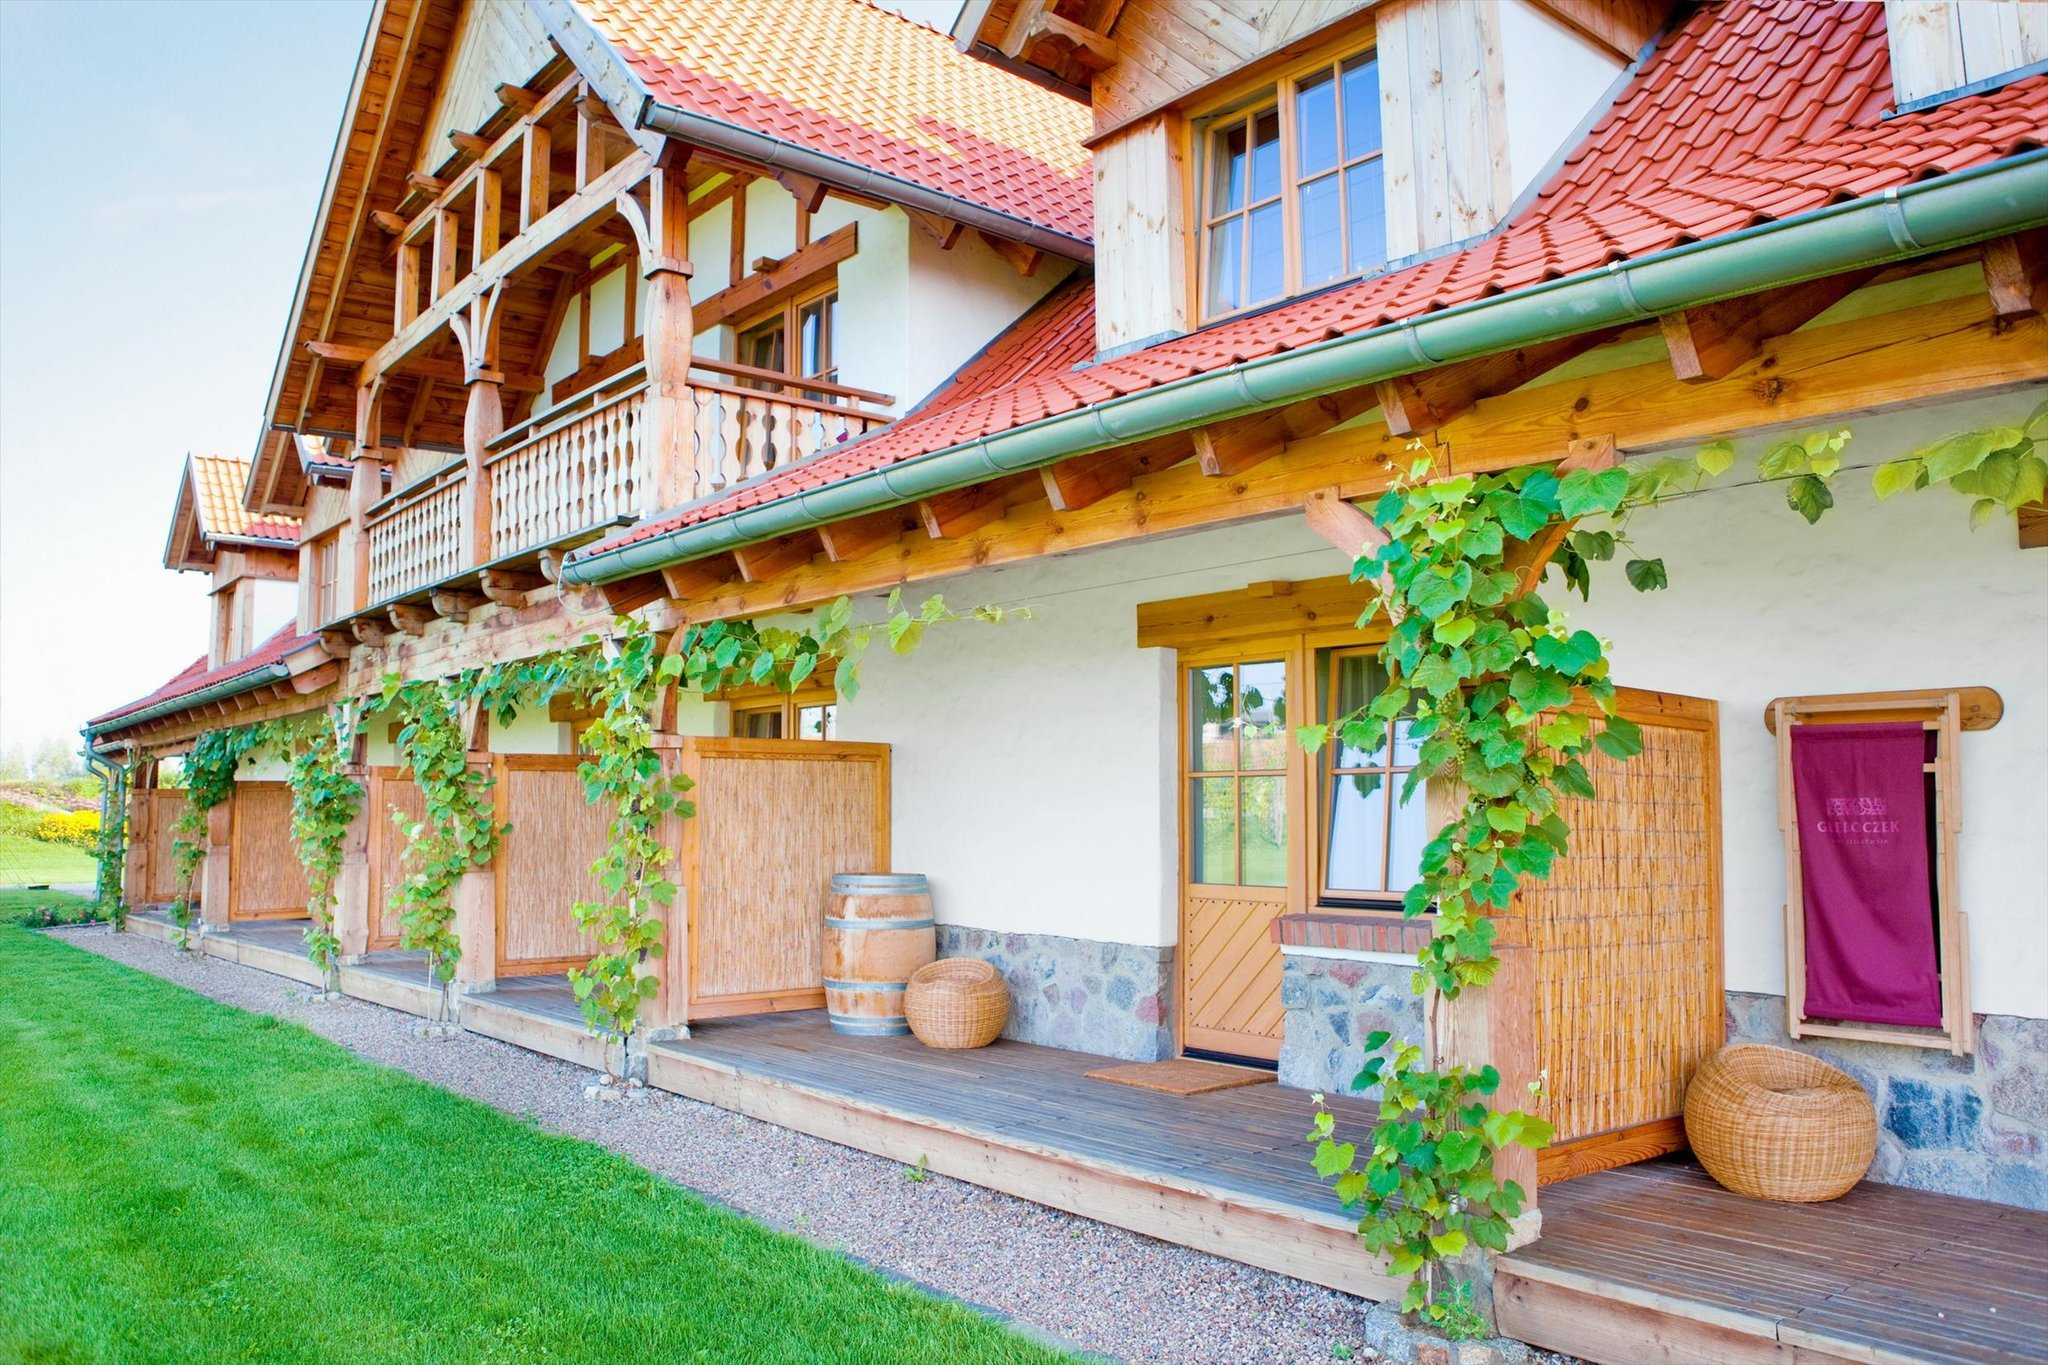 Gleboczek Vine Resort and Spa